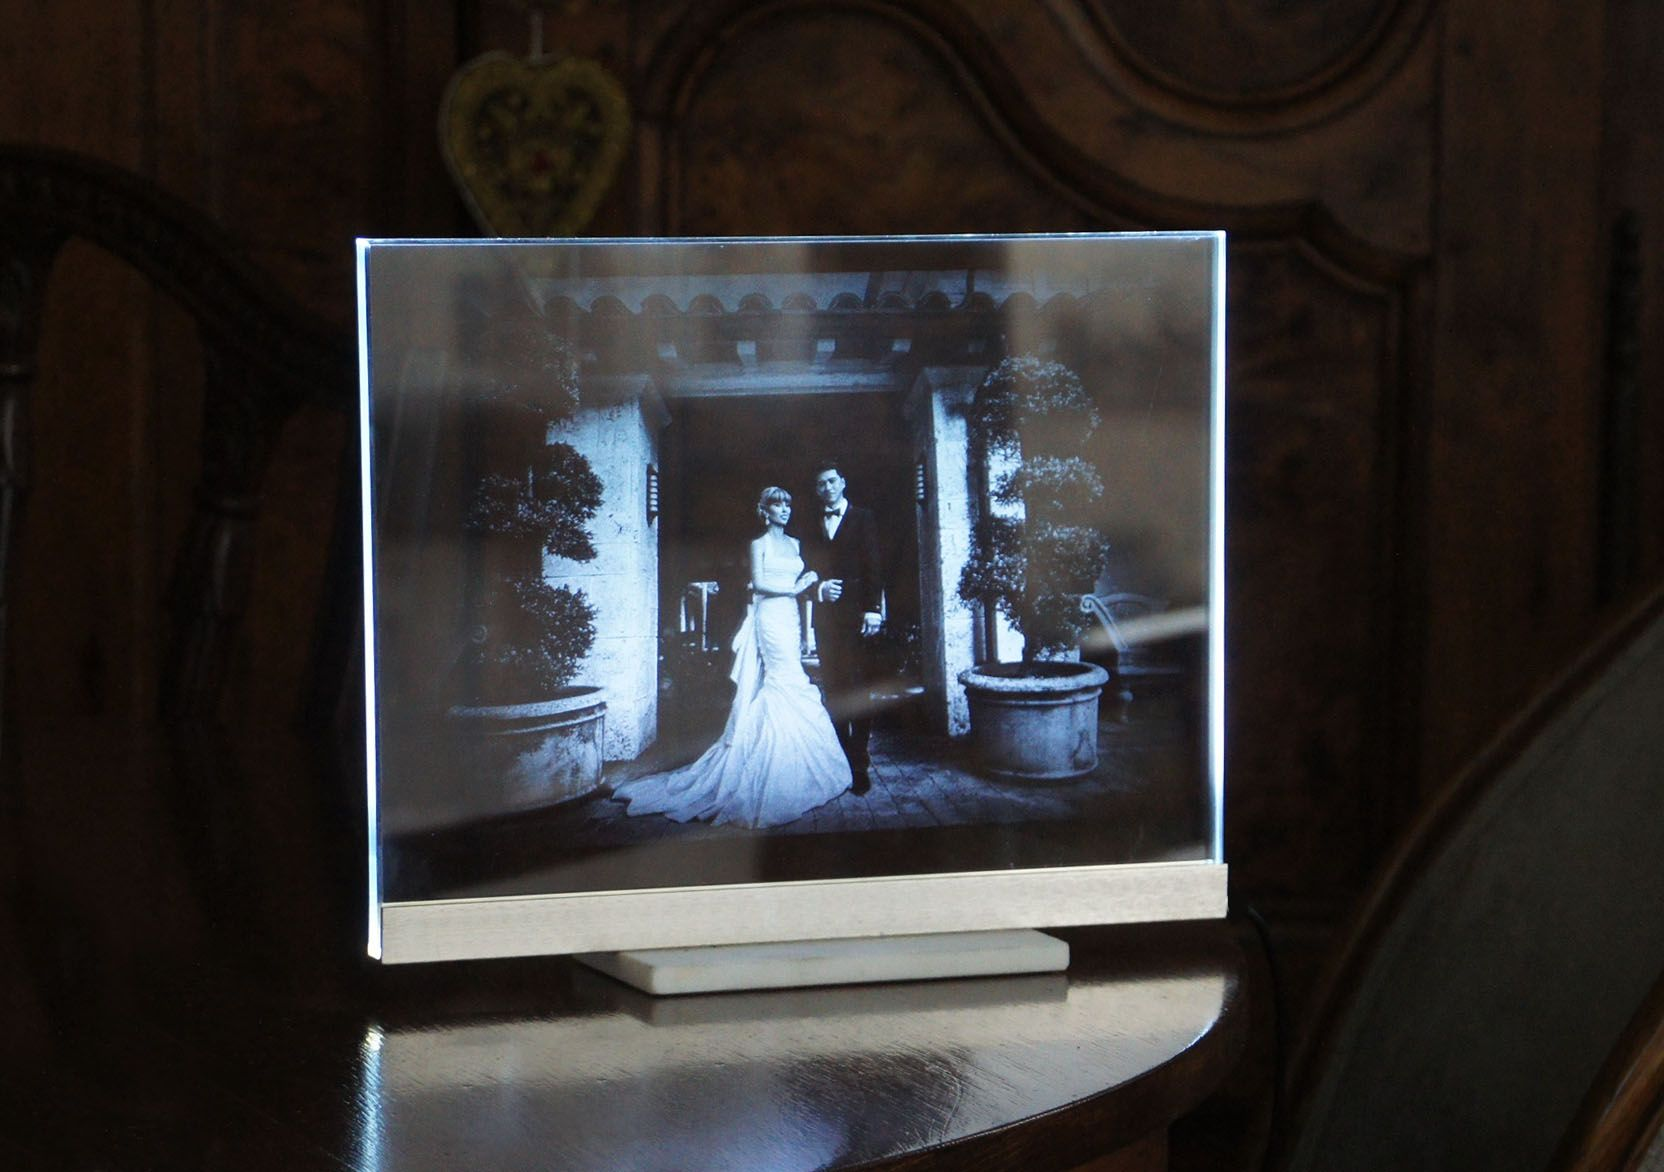 Custom wedding portrait etched glass night light led display by custom made wedding portrait etched glass night light led display jeuxipadfo Image collections